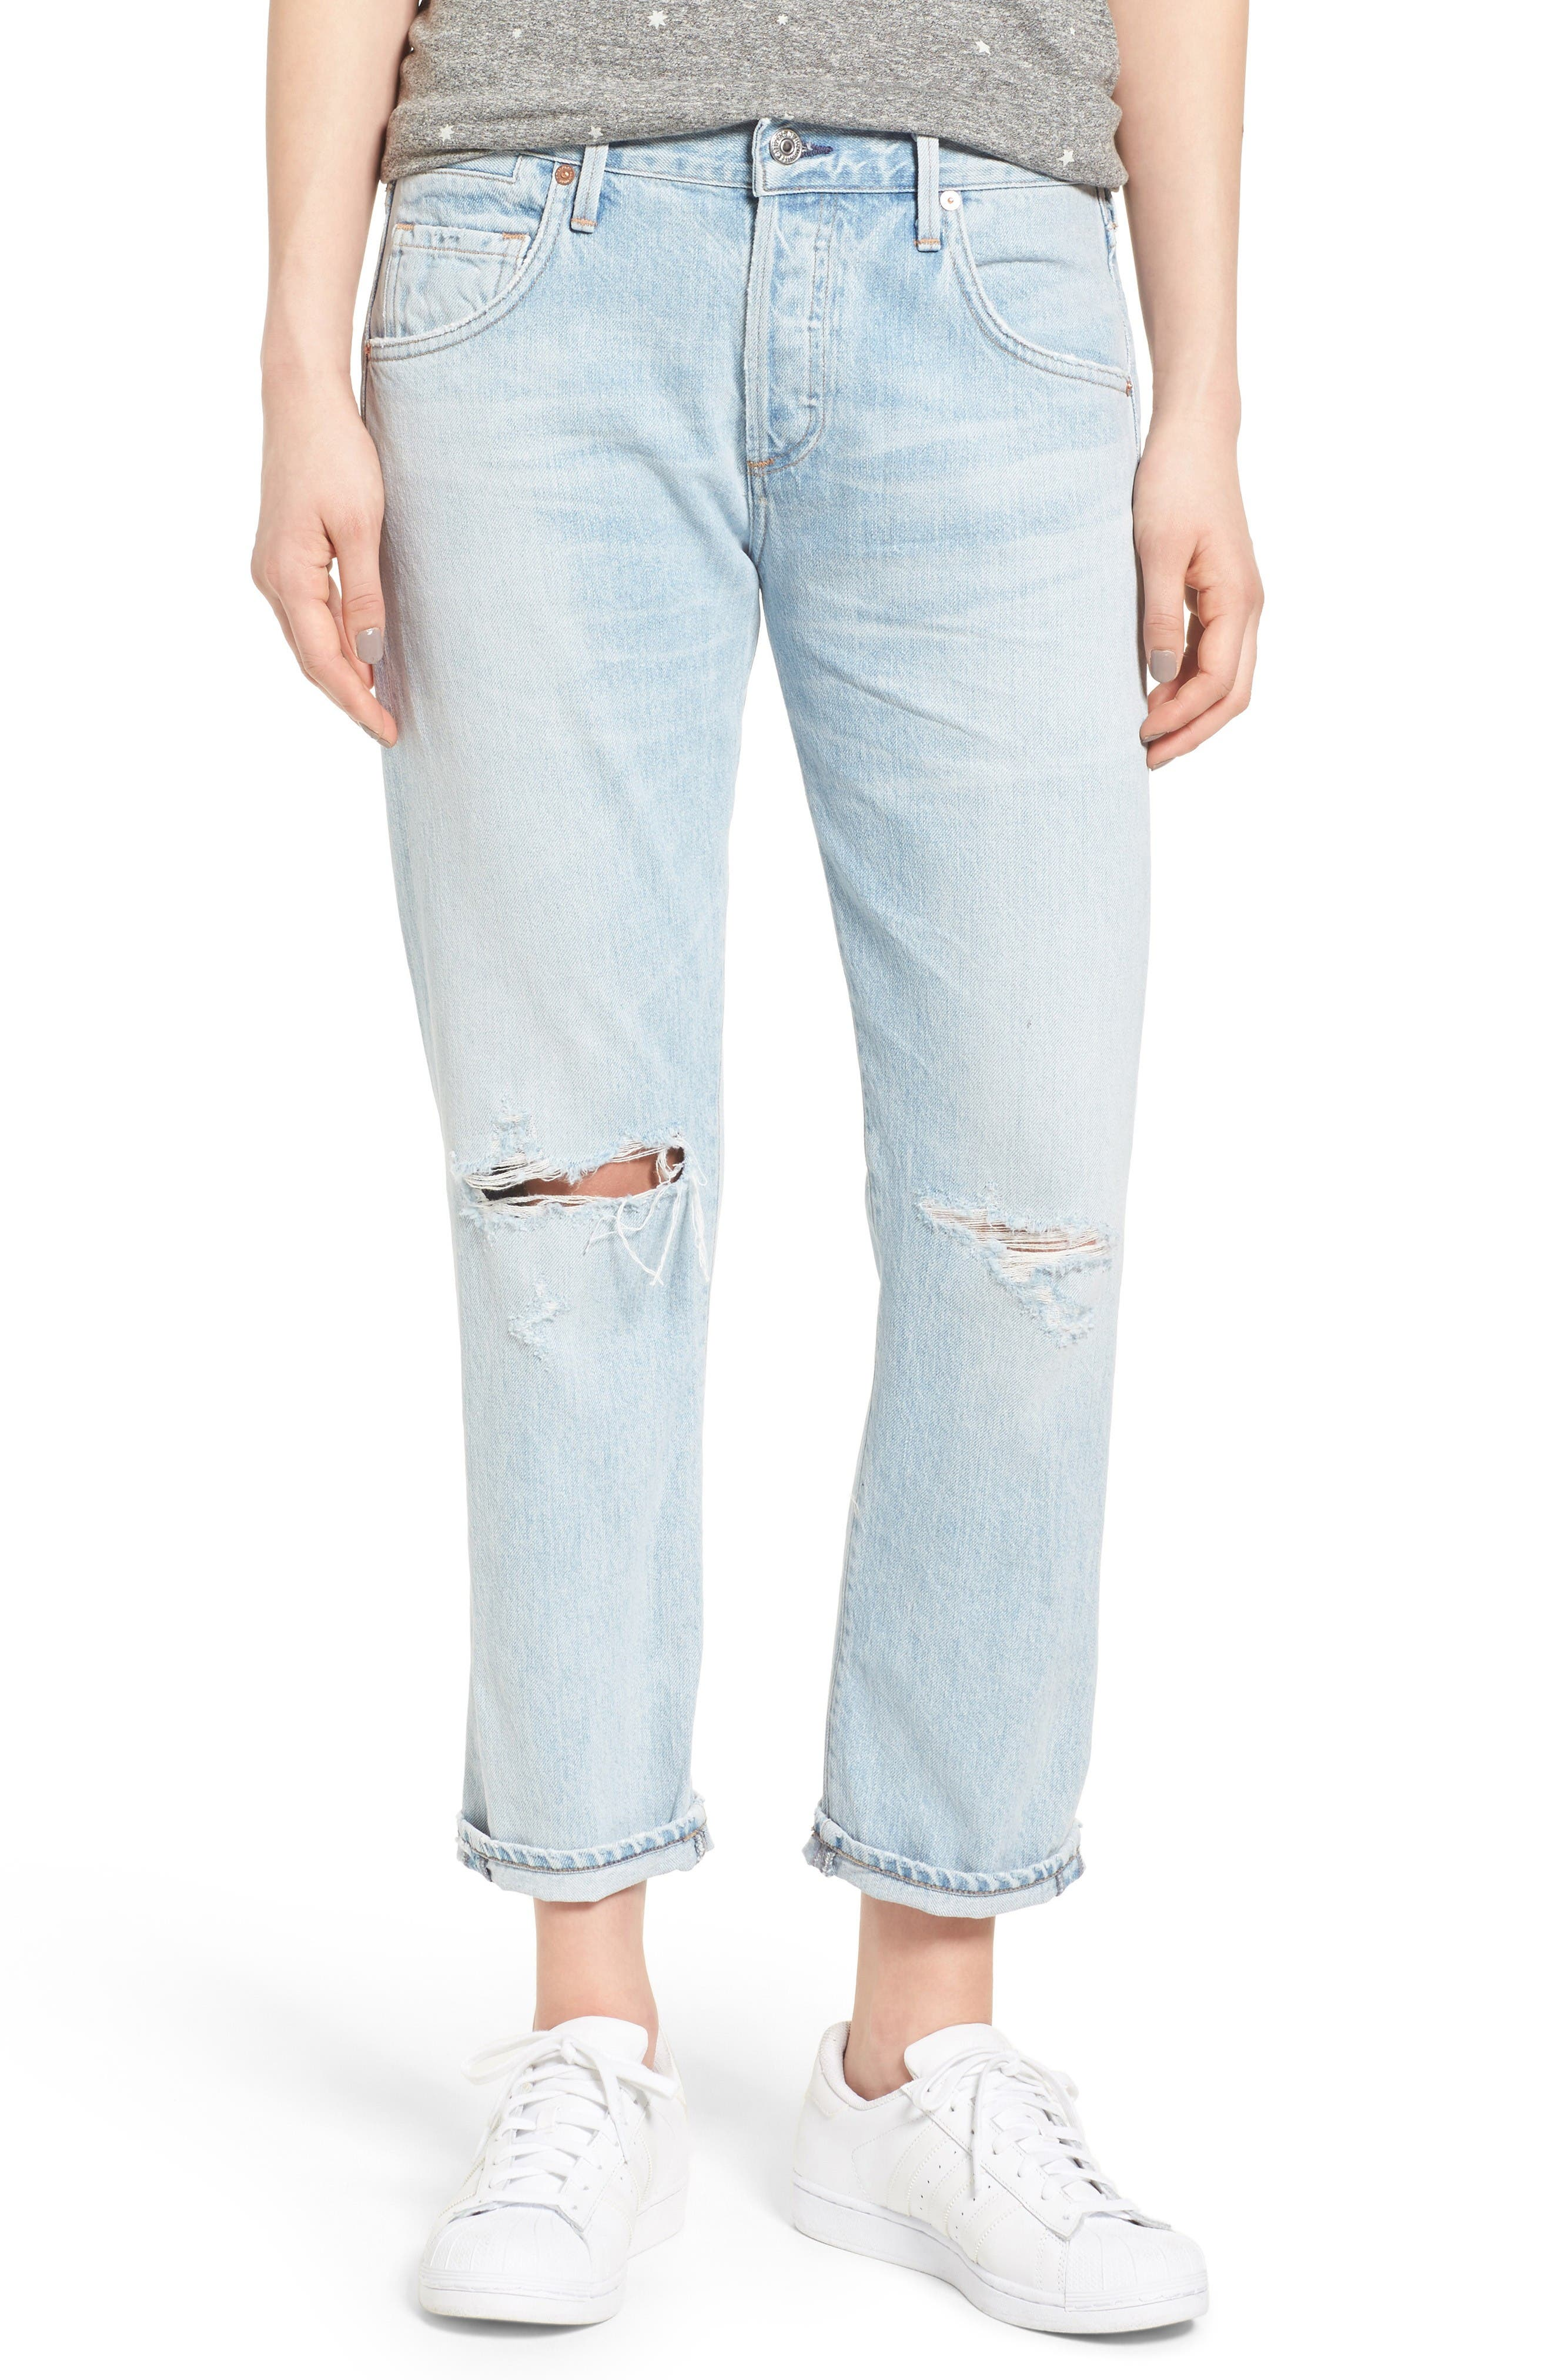 Main Image - Citizens of Humanity Emerson High Waist Ripped Boyfriend Jeans (Distressed Rock)